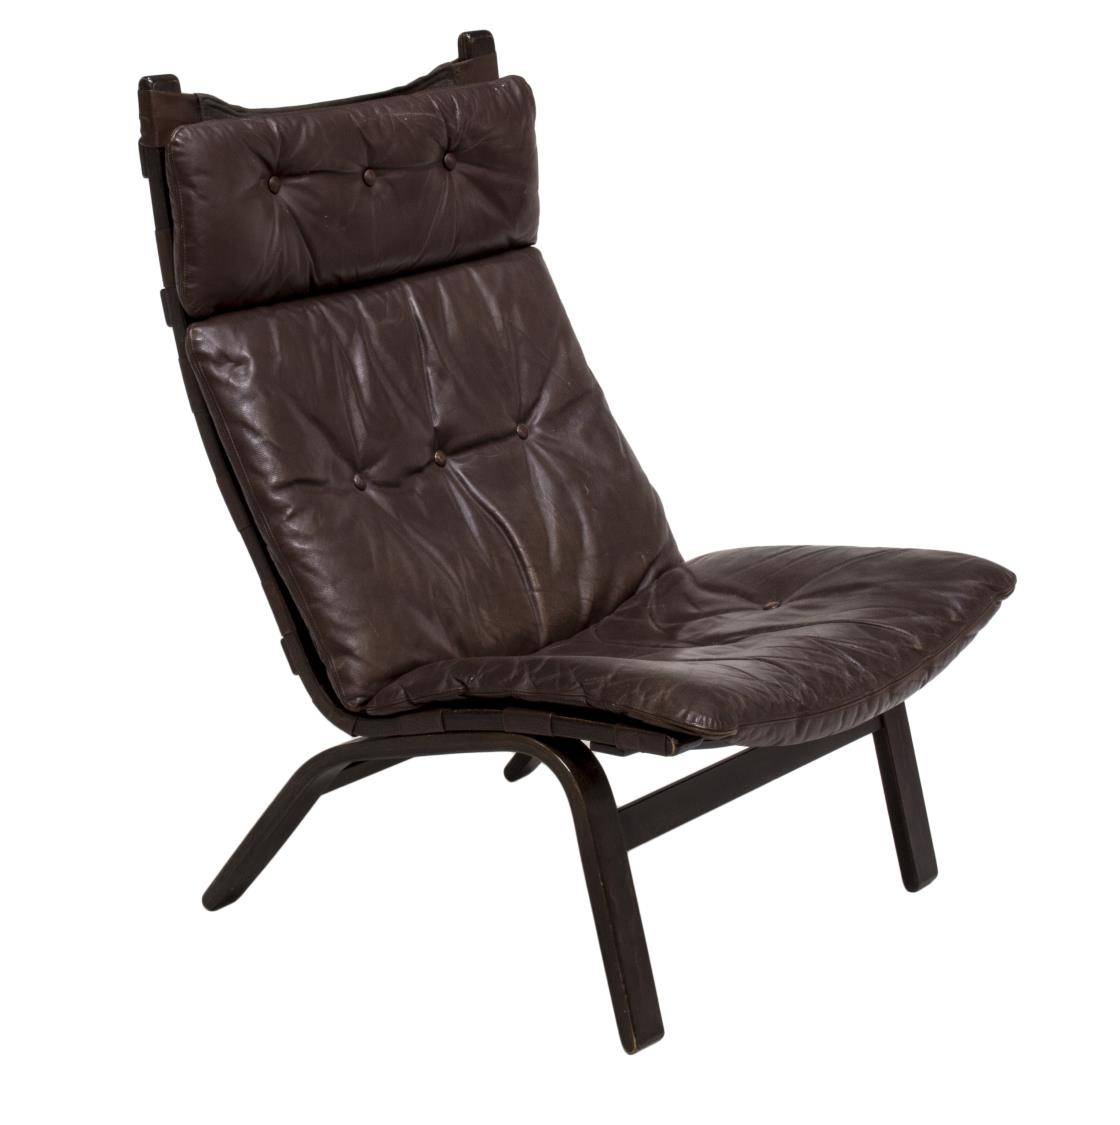 Danish Modern Leather Chair Danish Modern Leather Lounge Chair Holiday Estates